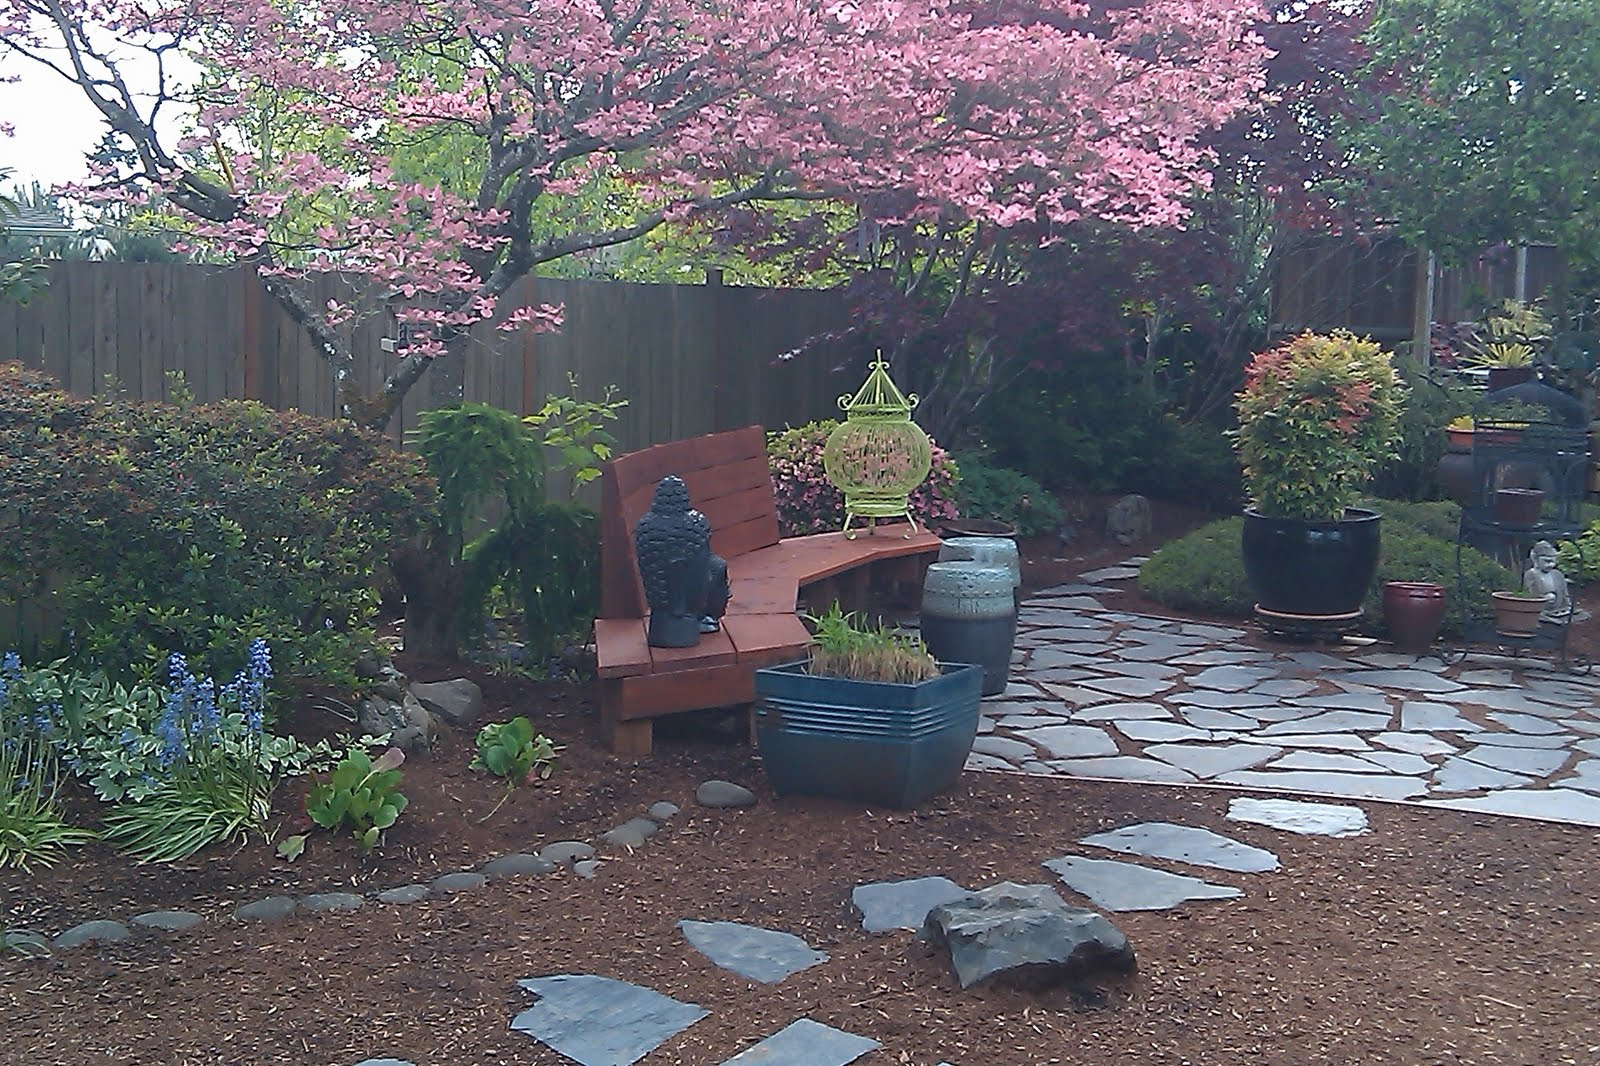 IMAG0380 Ideas For Small Backyards Stone on patio stone ideas, small outdoor stone fireplace, fireplace stone ideas, small japanese garden design ideas, living room stone ideas, small front yard landscaping ideas, small front yard rock garden ideas, kitchen stone ideas, bathroom stone ideas, dining room stone ideas, small front porch stone ideas,